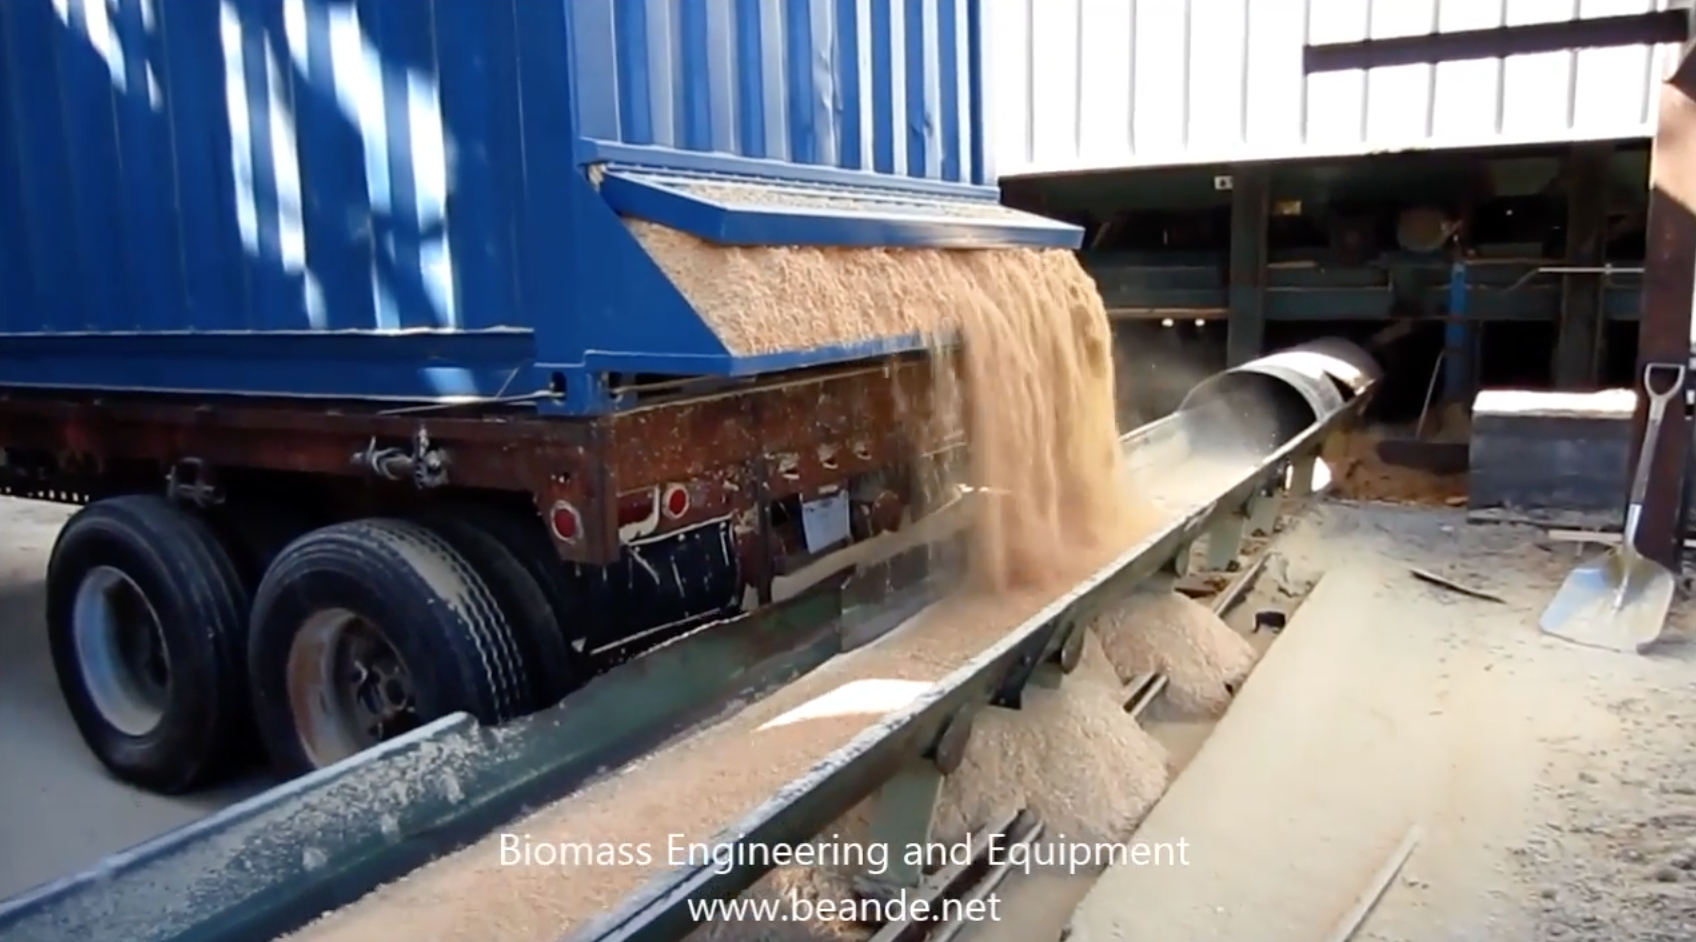 video of walking floor trailer in action, also called a live floor trailer; a horizontal silo metering out sawdust at a sawmill for biomass boiler fuel